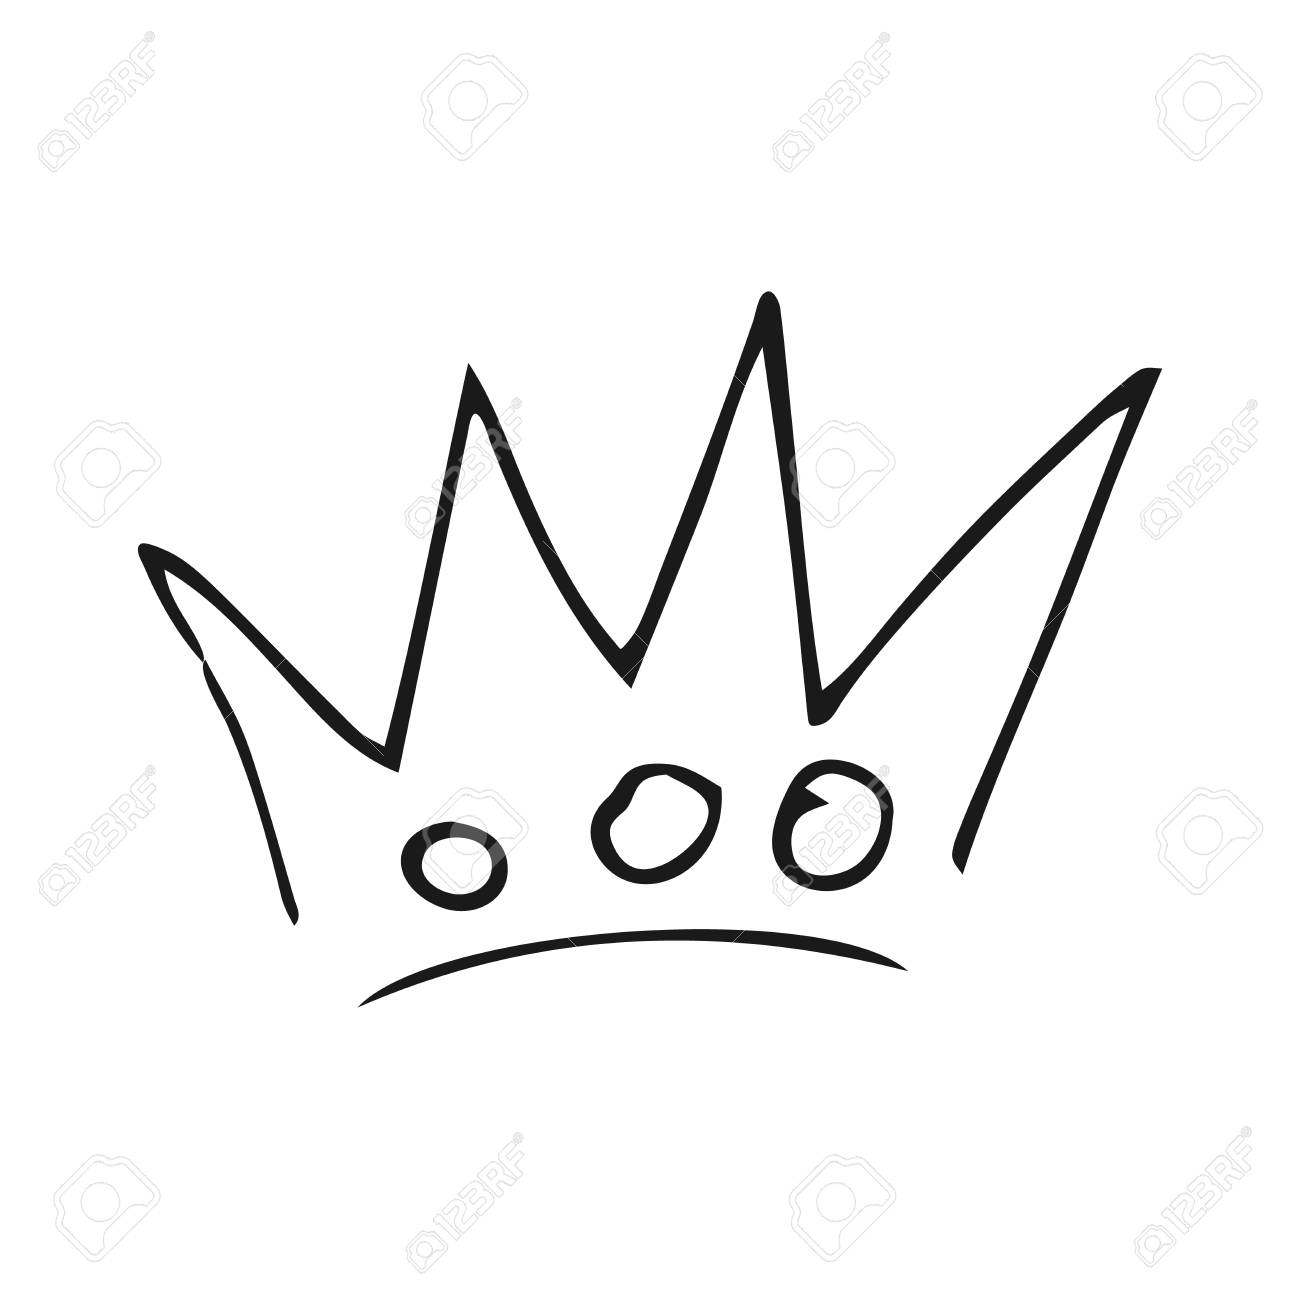 Hand drawn crown  Simple graffiti sketch queen or king crown